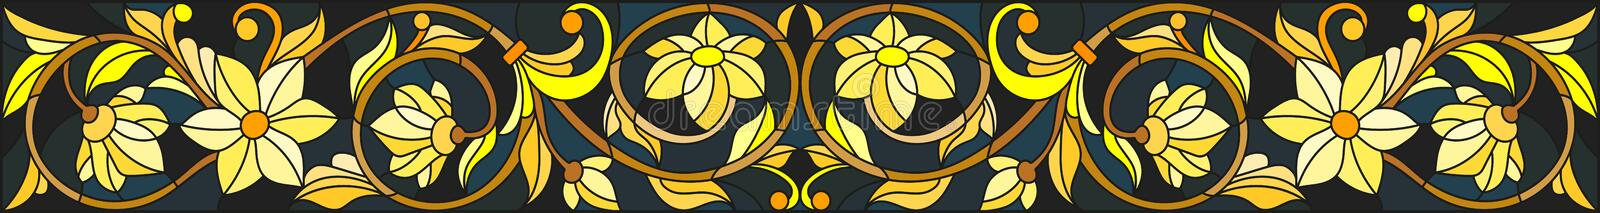 Stained glass illustration with floral ornament ,imitation gold on dark background with swirls and floral motifs vector illustration